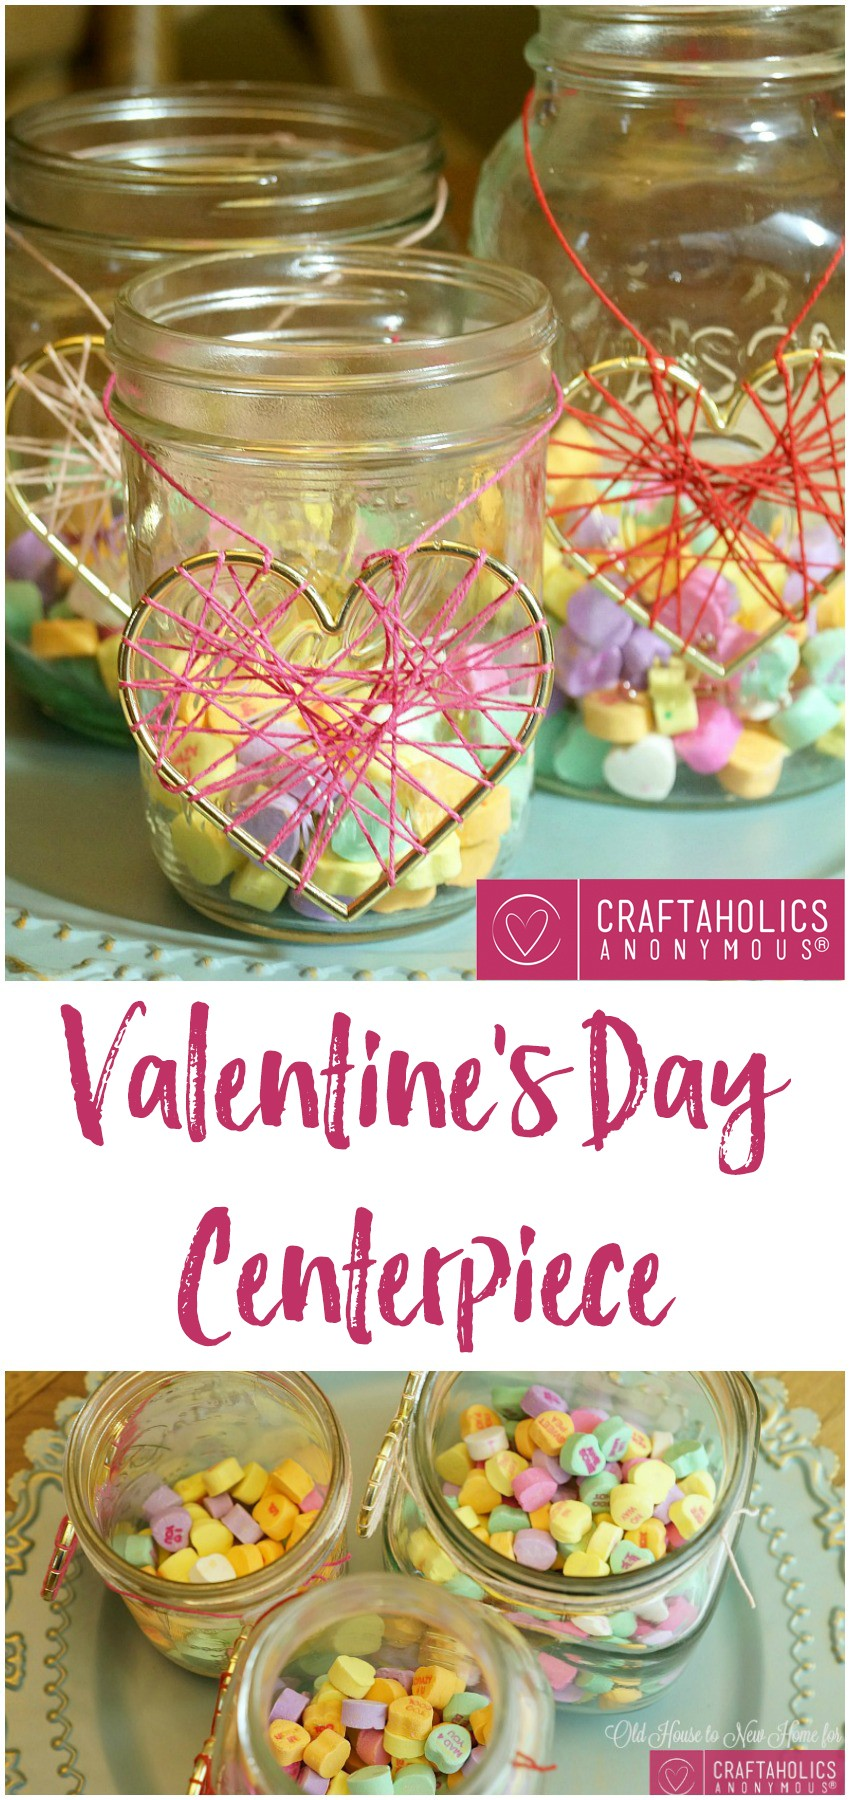 Valentine's Day Centerpiece at Craftaholics Anonymous